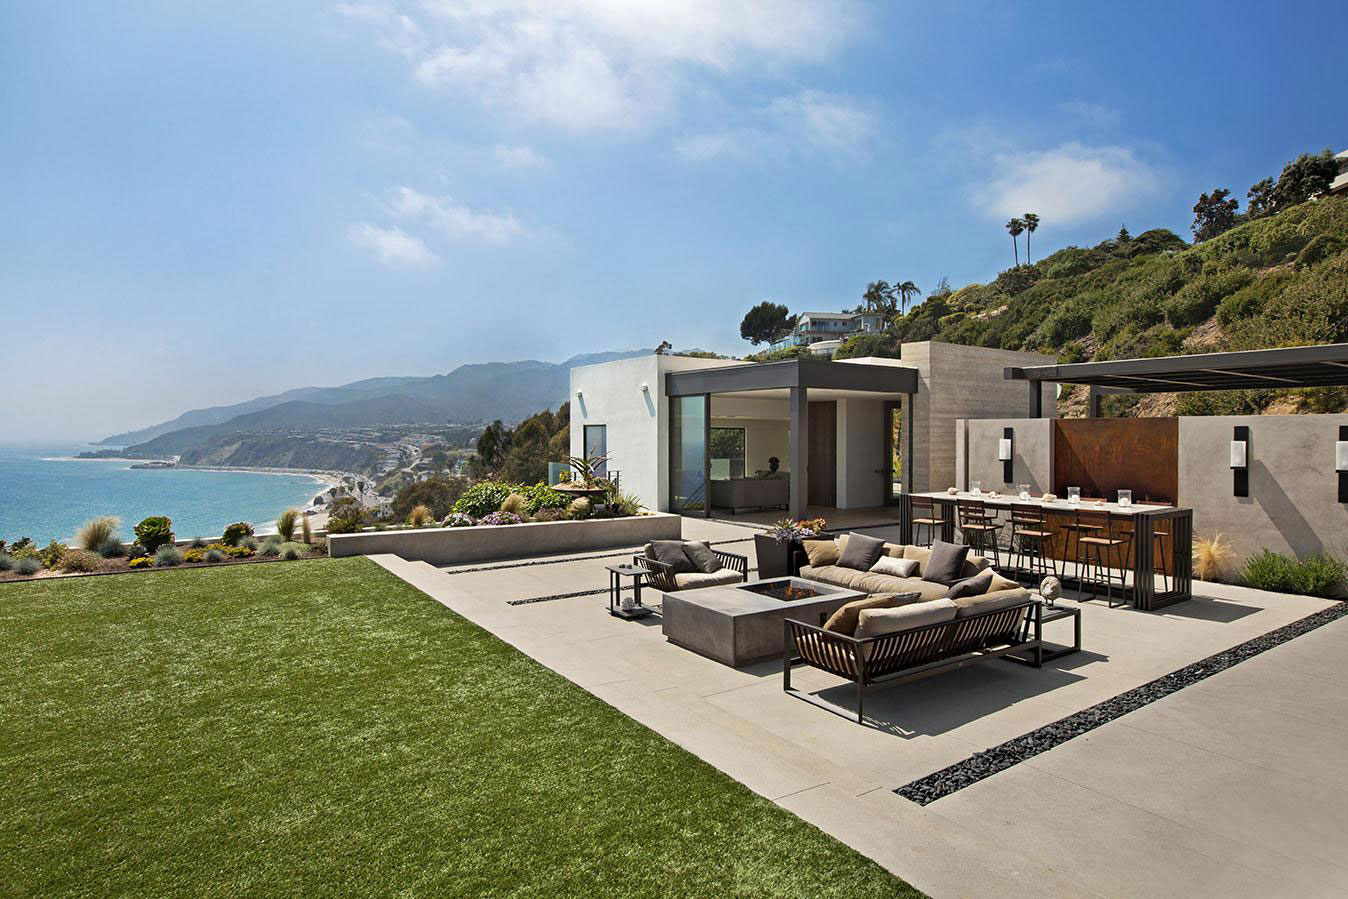 Sea Views, Terrace, Fireplace, Outdoor Sofa, House in Pacific Palisades, Los Angeles